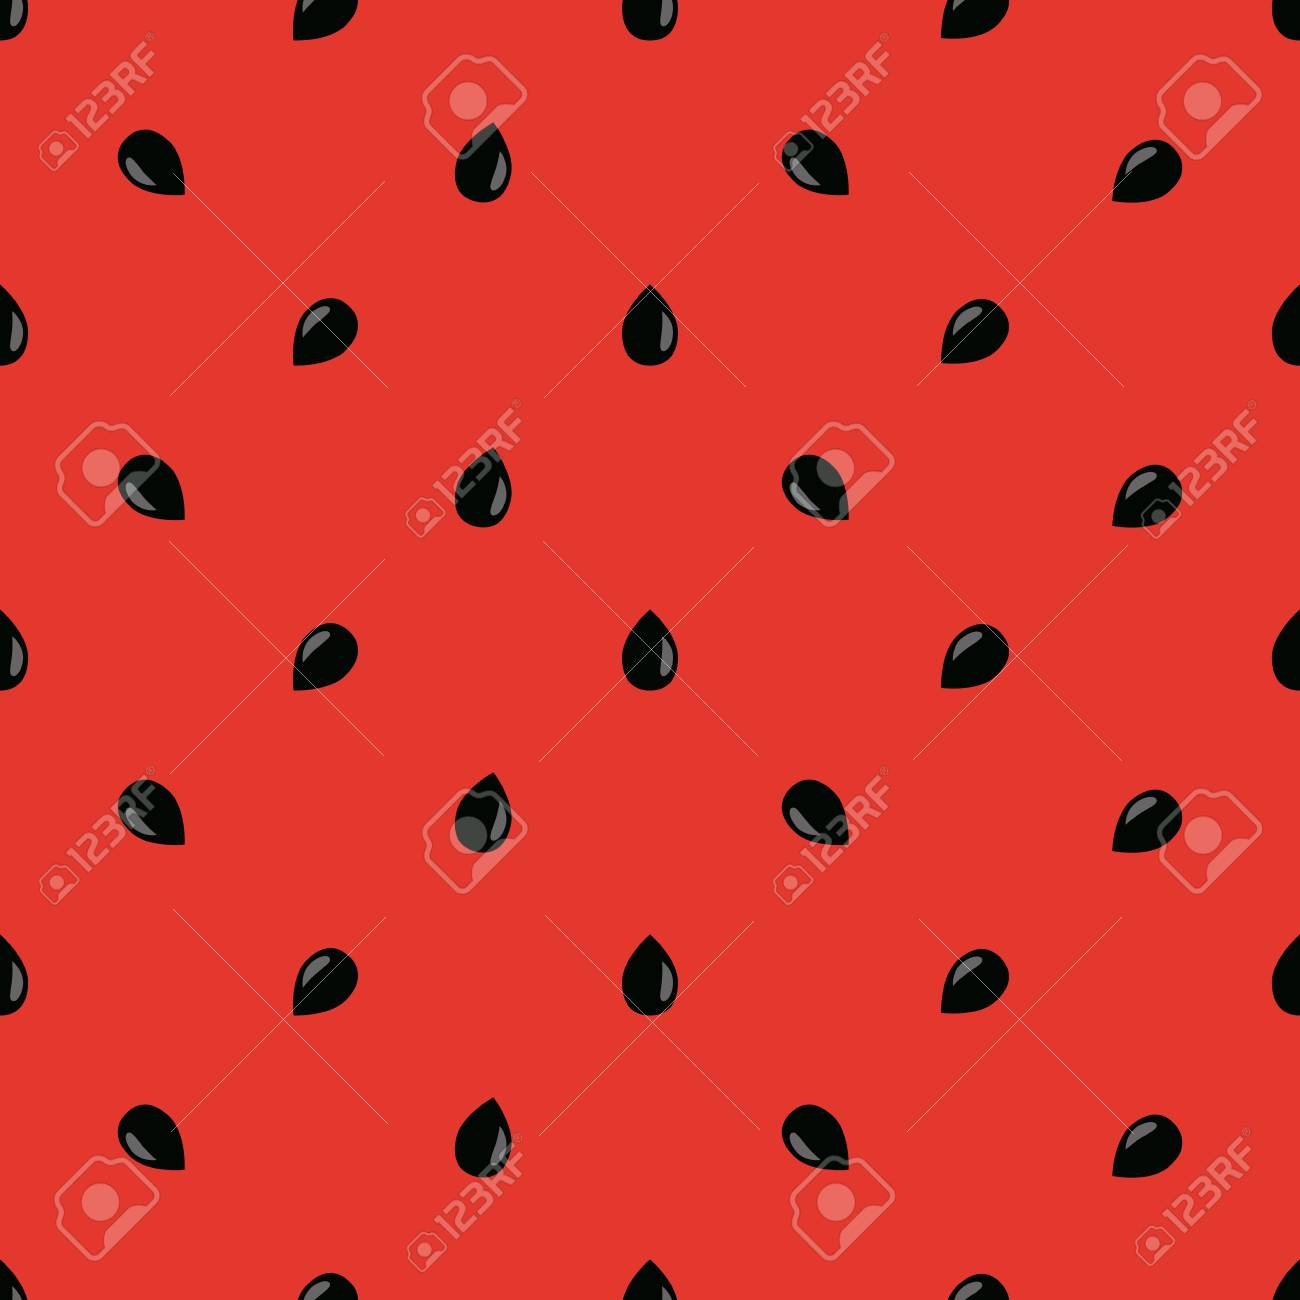 Download Wallpaper High Quality Pattern - 80910990-minimalist-watermelon-high-quality-seamless-pattern-cute-seamless-pattern-with-watermelons-vector-ba  Snapshot_223488.jpg